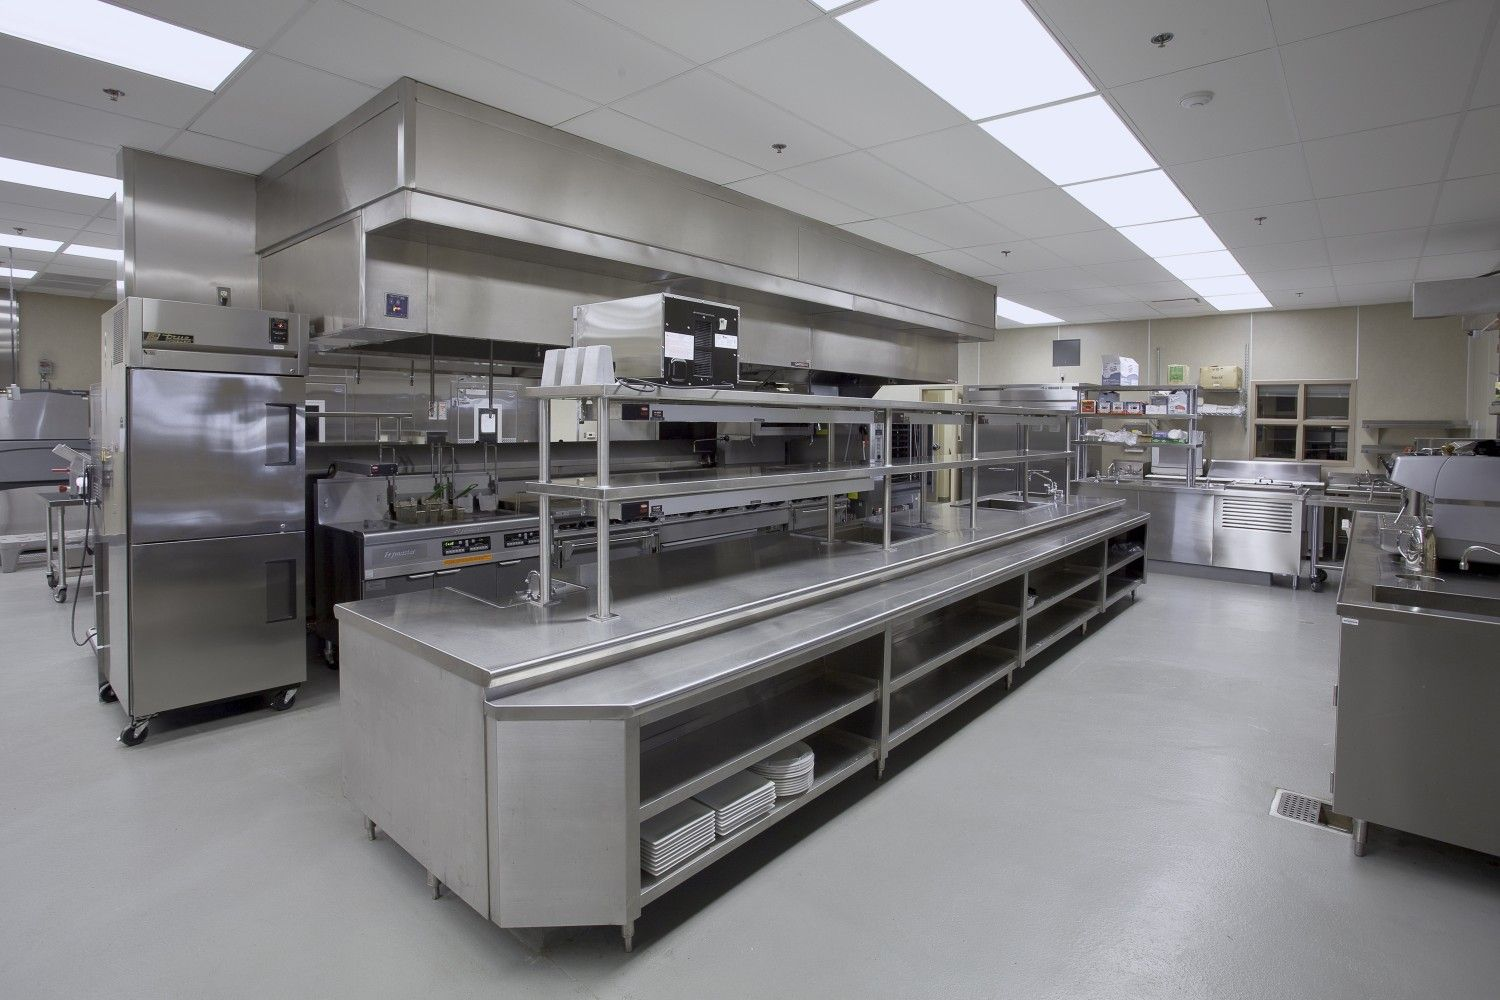 commercial kitchen design  Google Search  Commercial